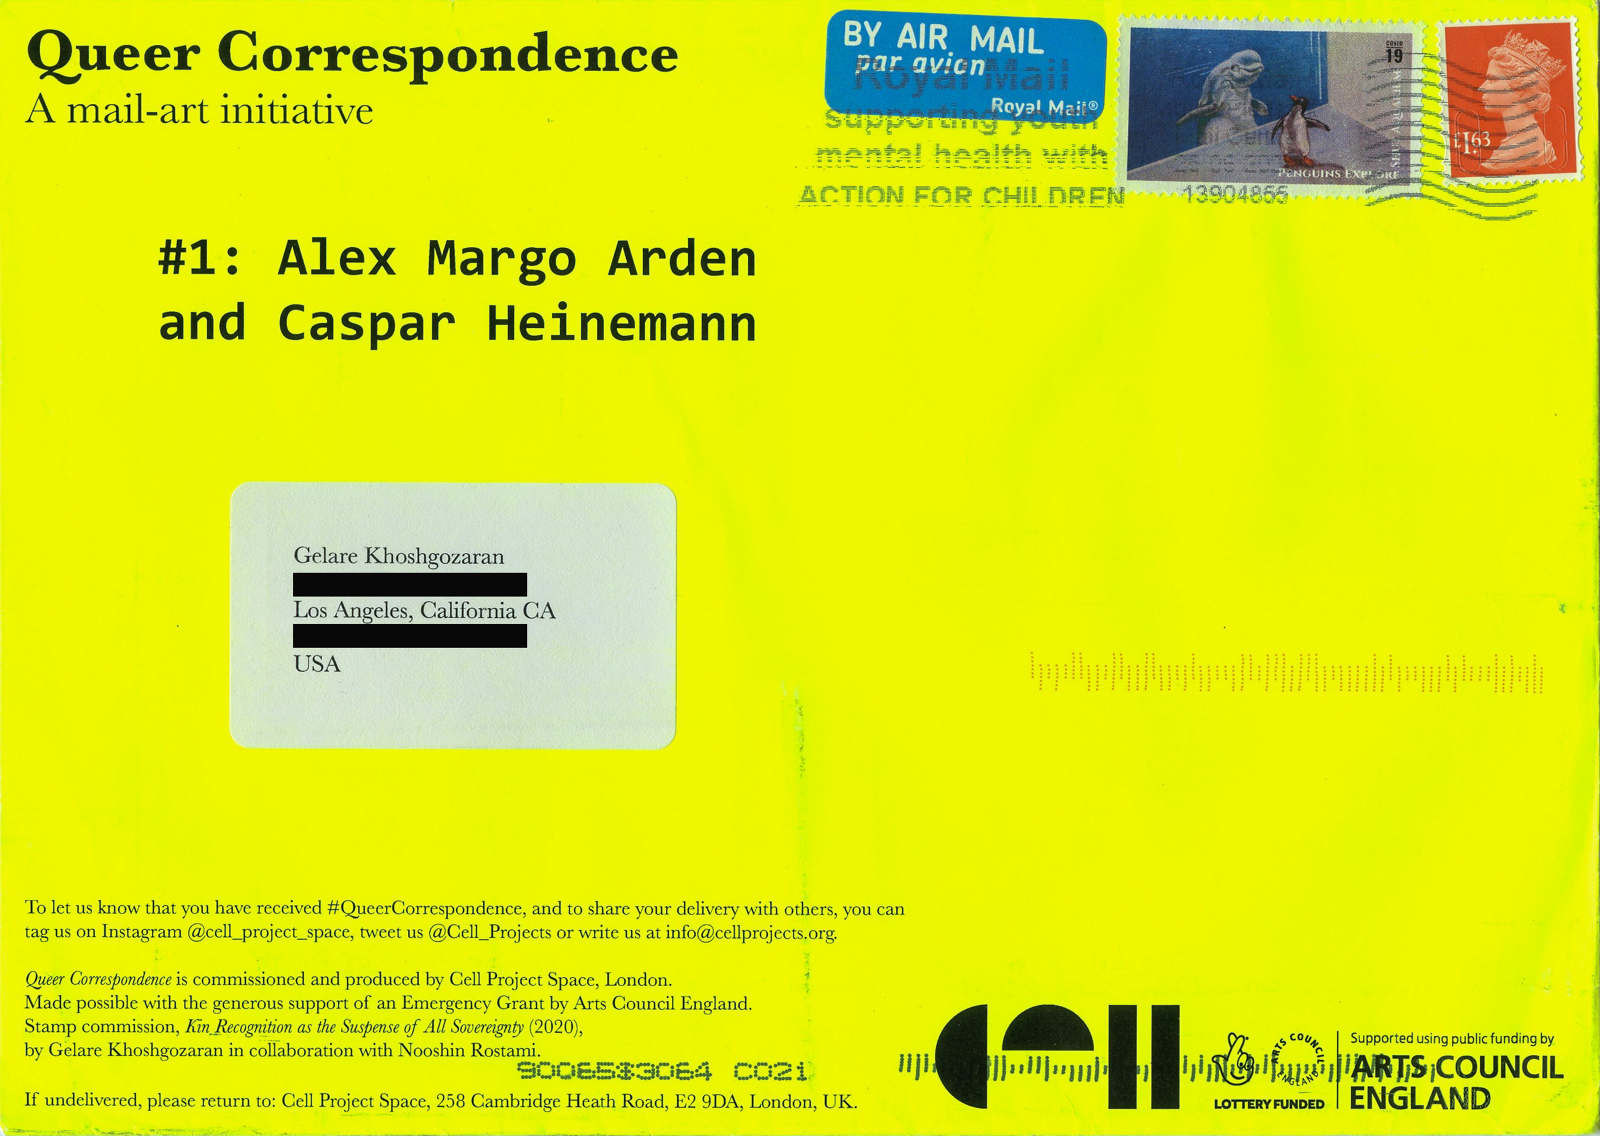 Alex Margo Arden & Caspar Heinemann, Queer Correspondence #1, 2020. Image submitted by Gelare Khoshgozaran, Los Angeles, USA.